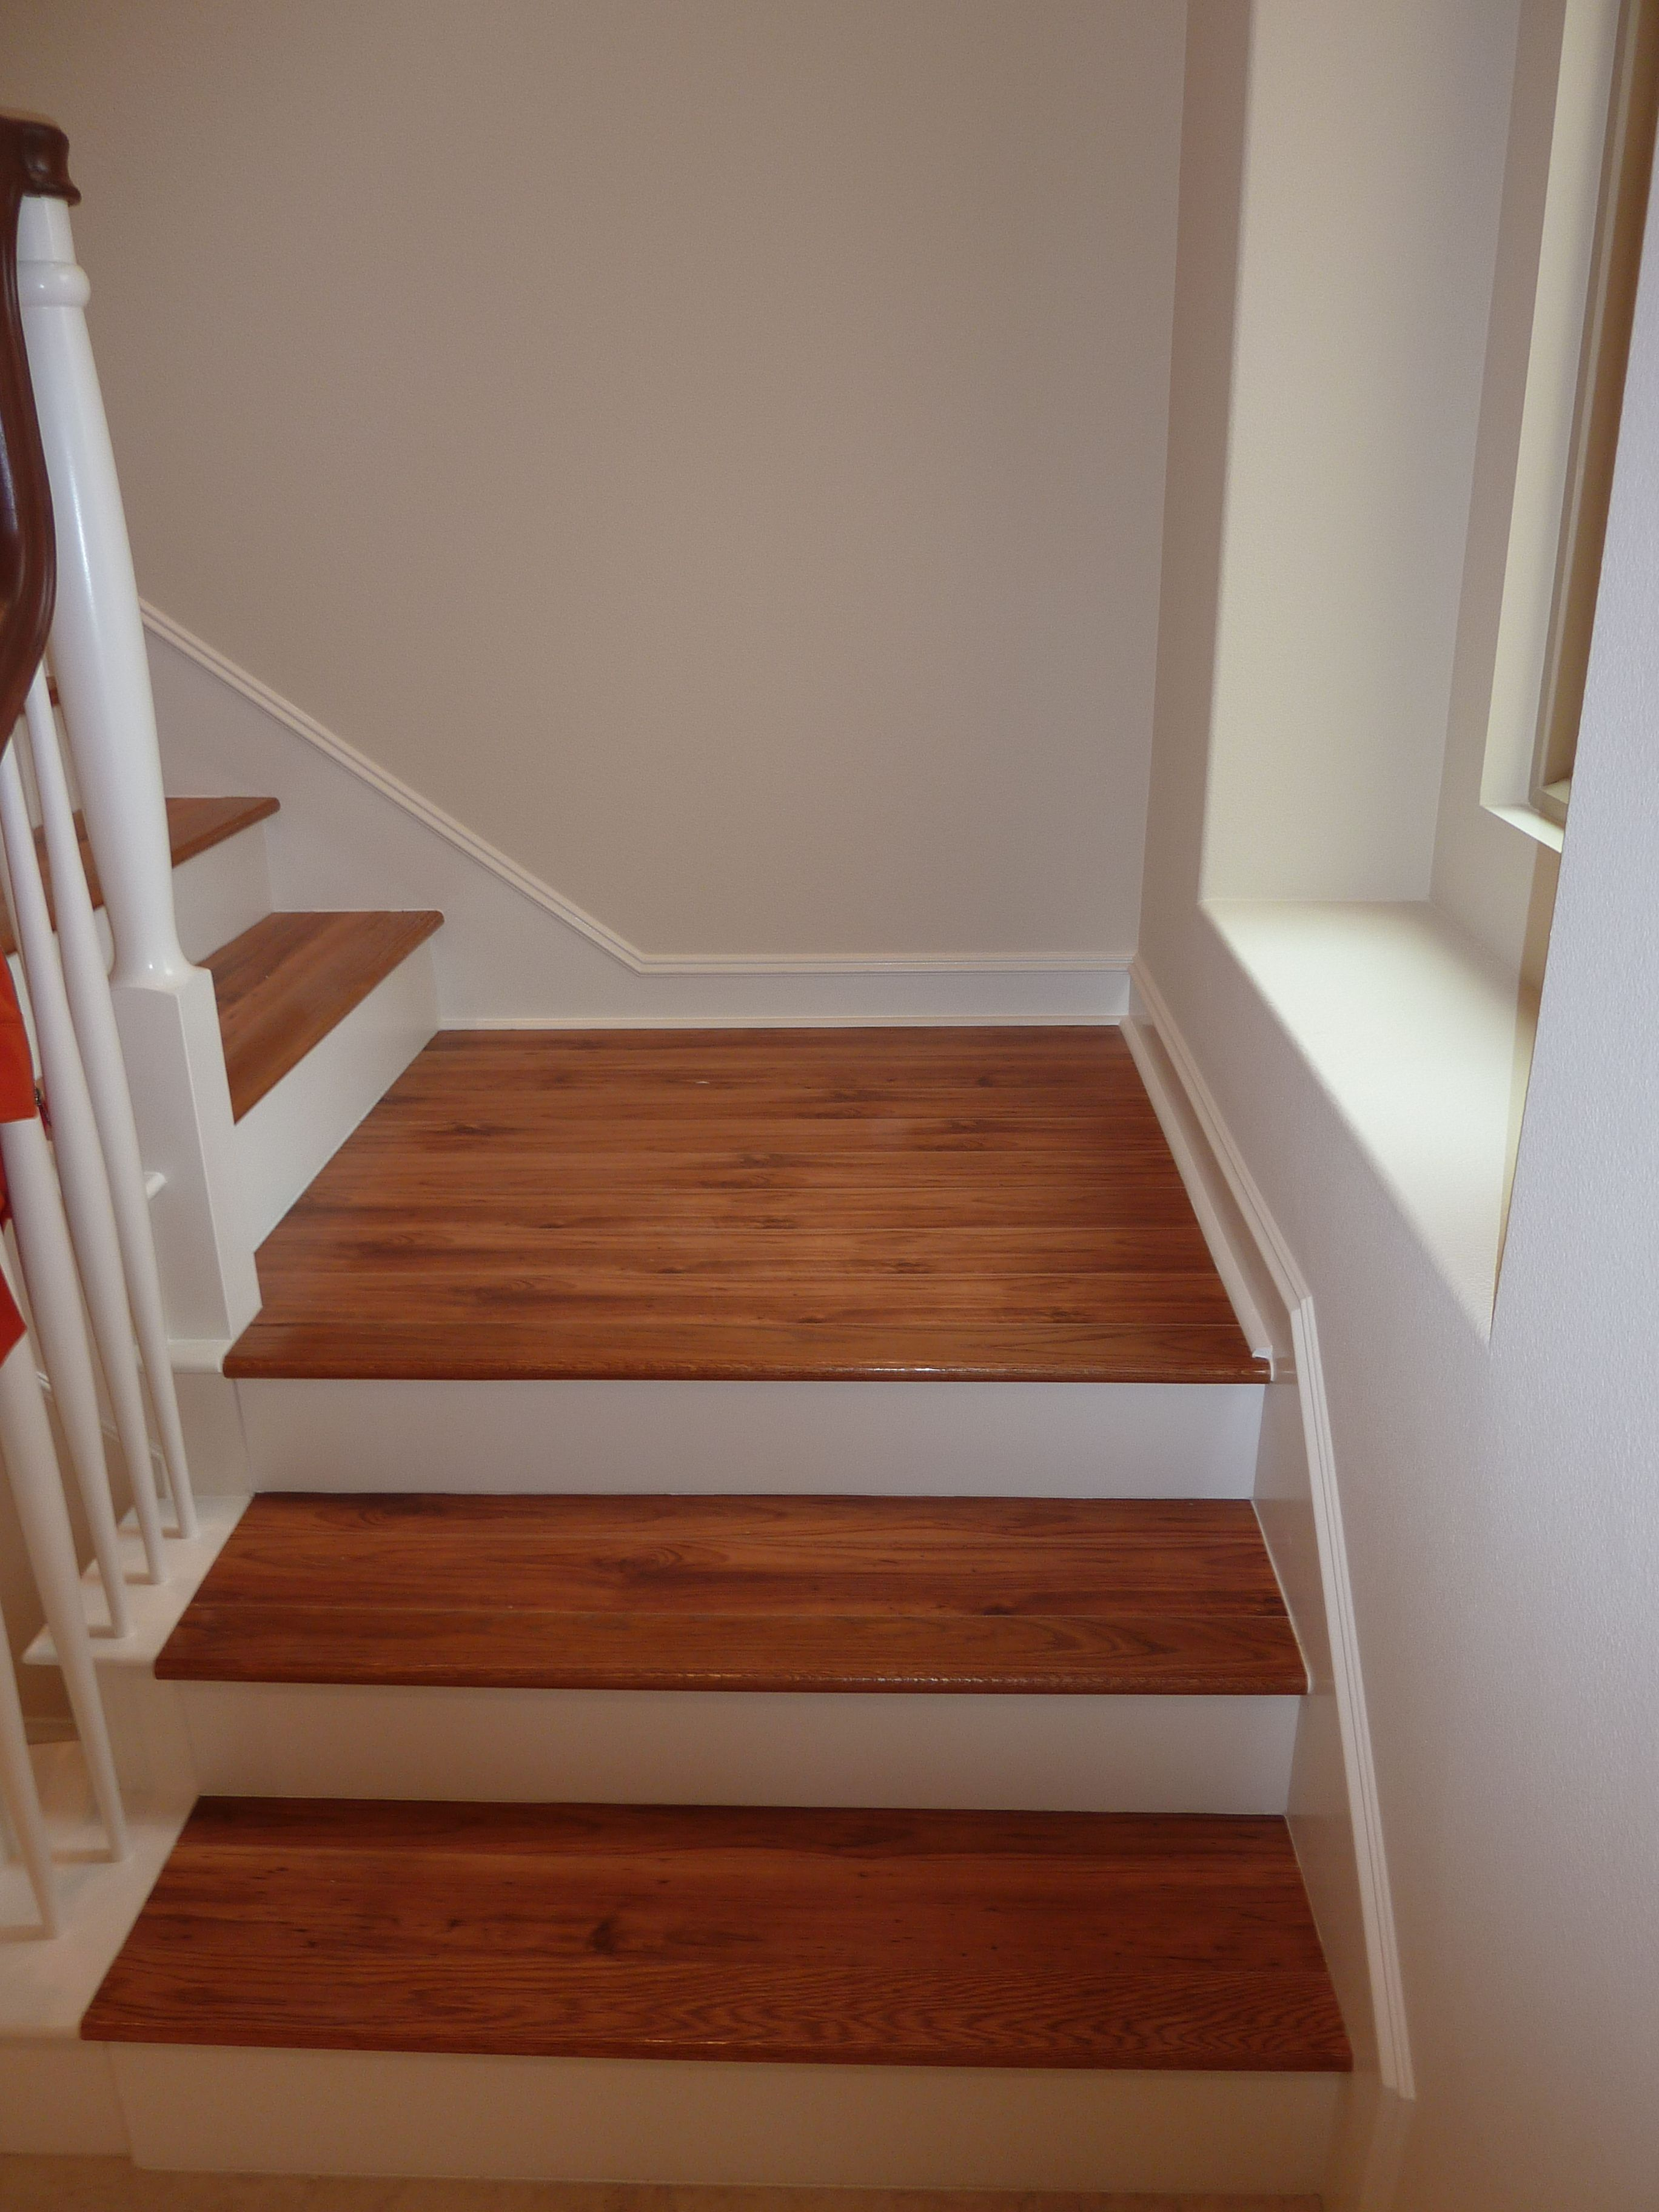 Laminate Flooring Installation Cost Best Choice Bamboo Ing For Stairs With Harmonic Combination Colour Grey Laminated